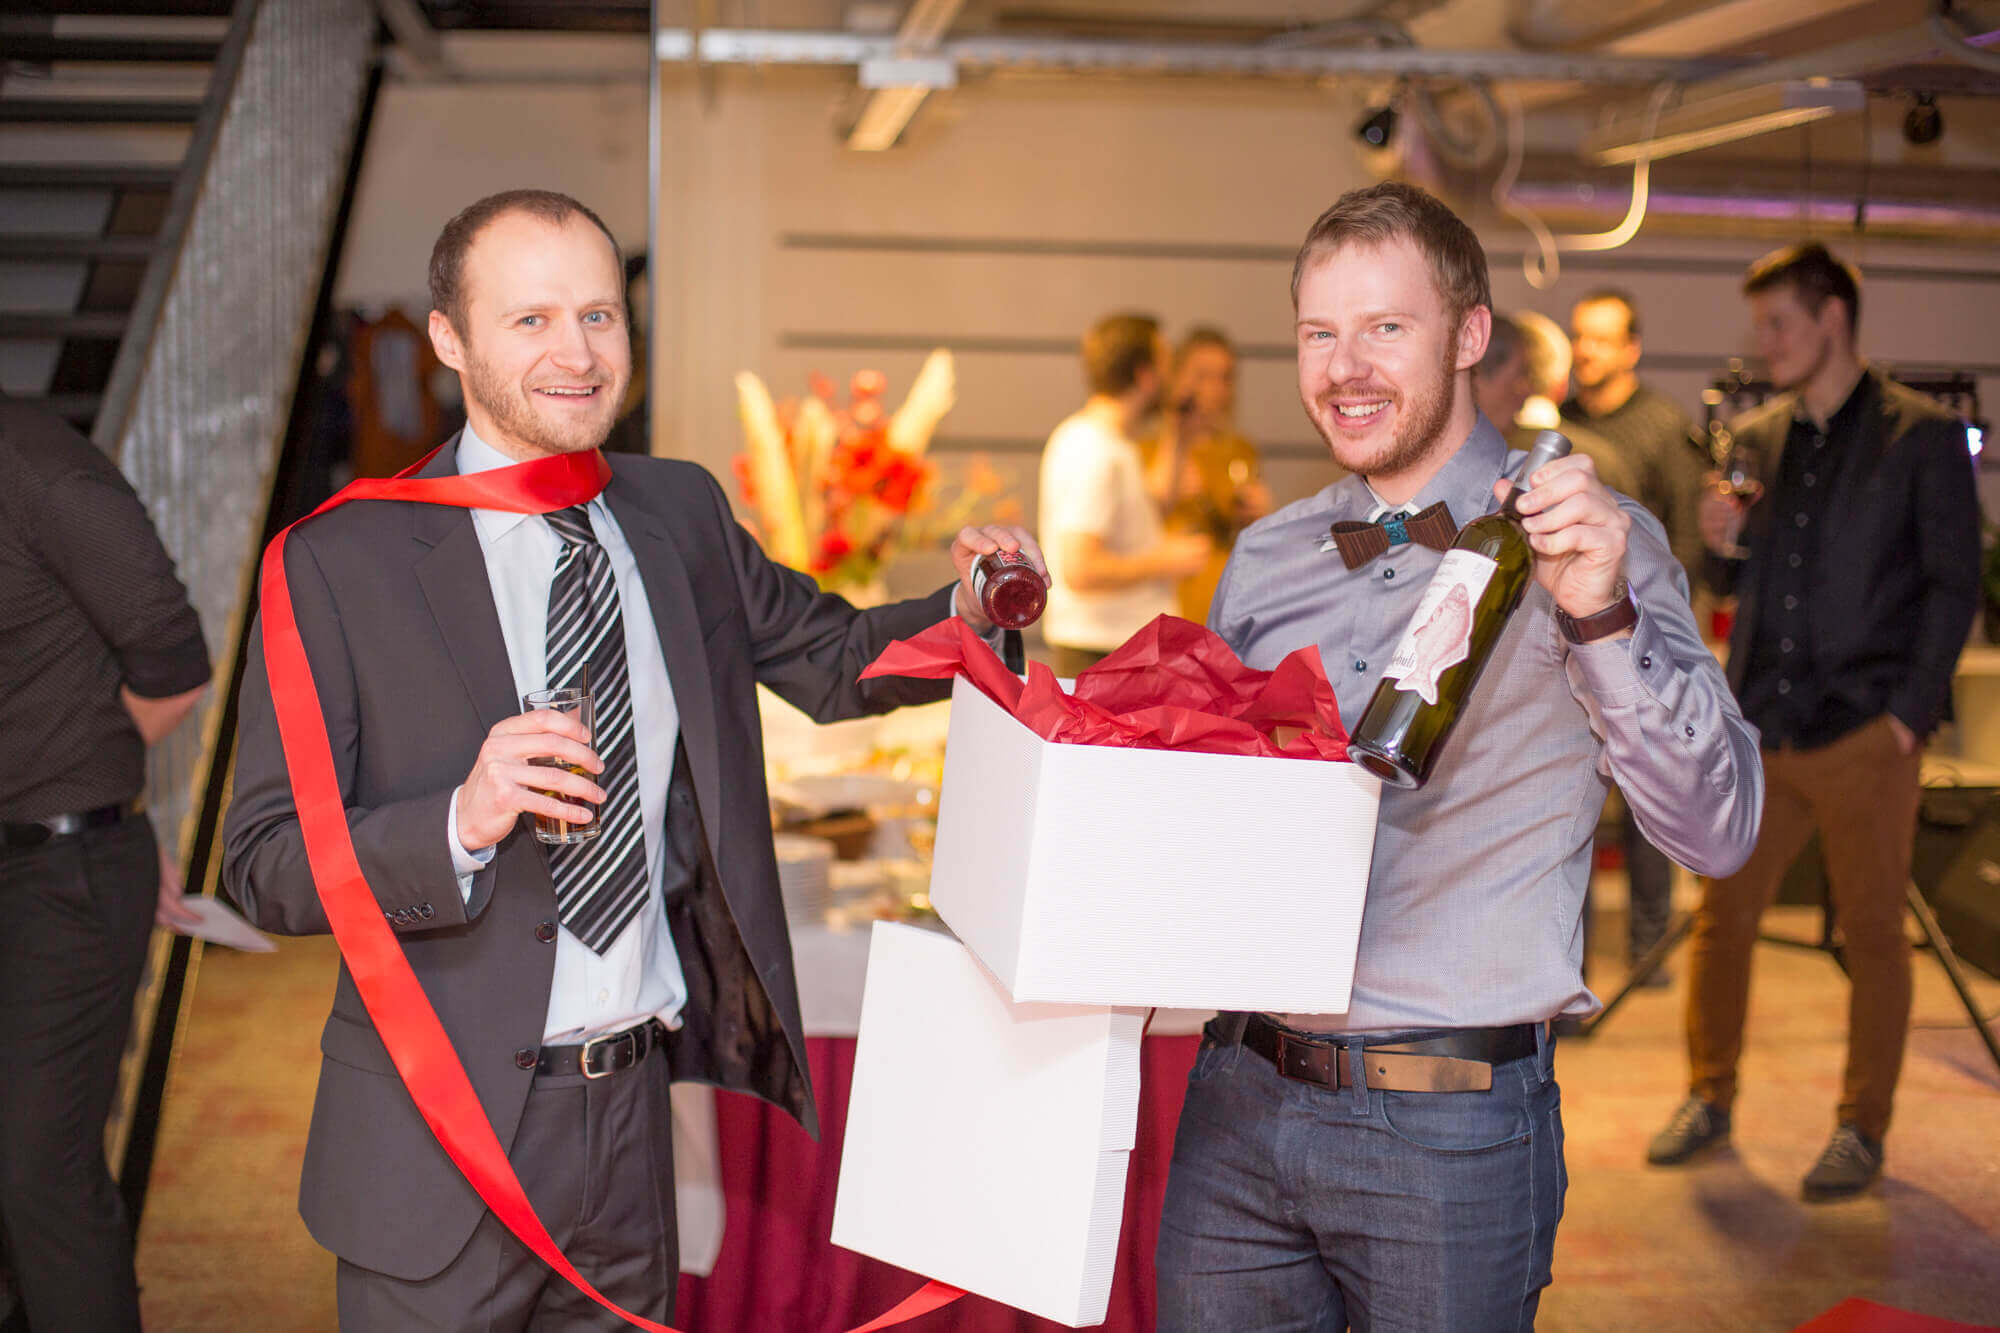 The company executives, Karel and Arni, are opening a gift.